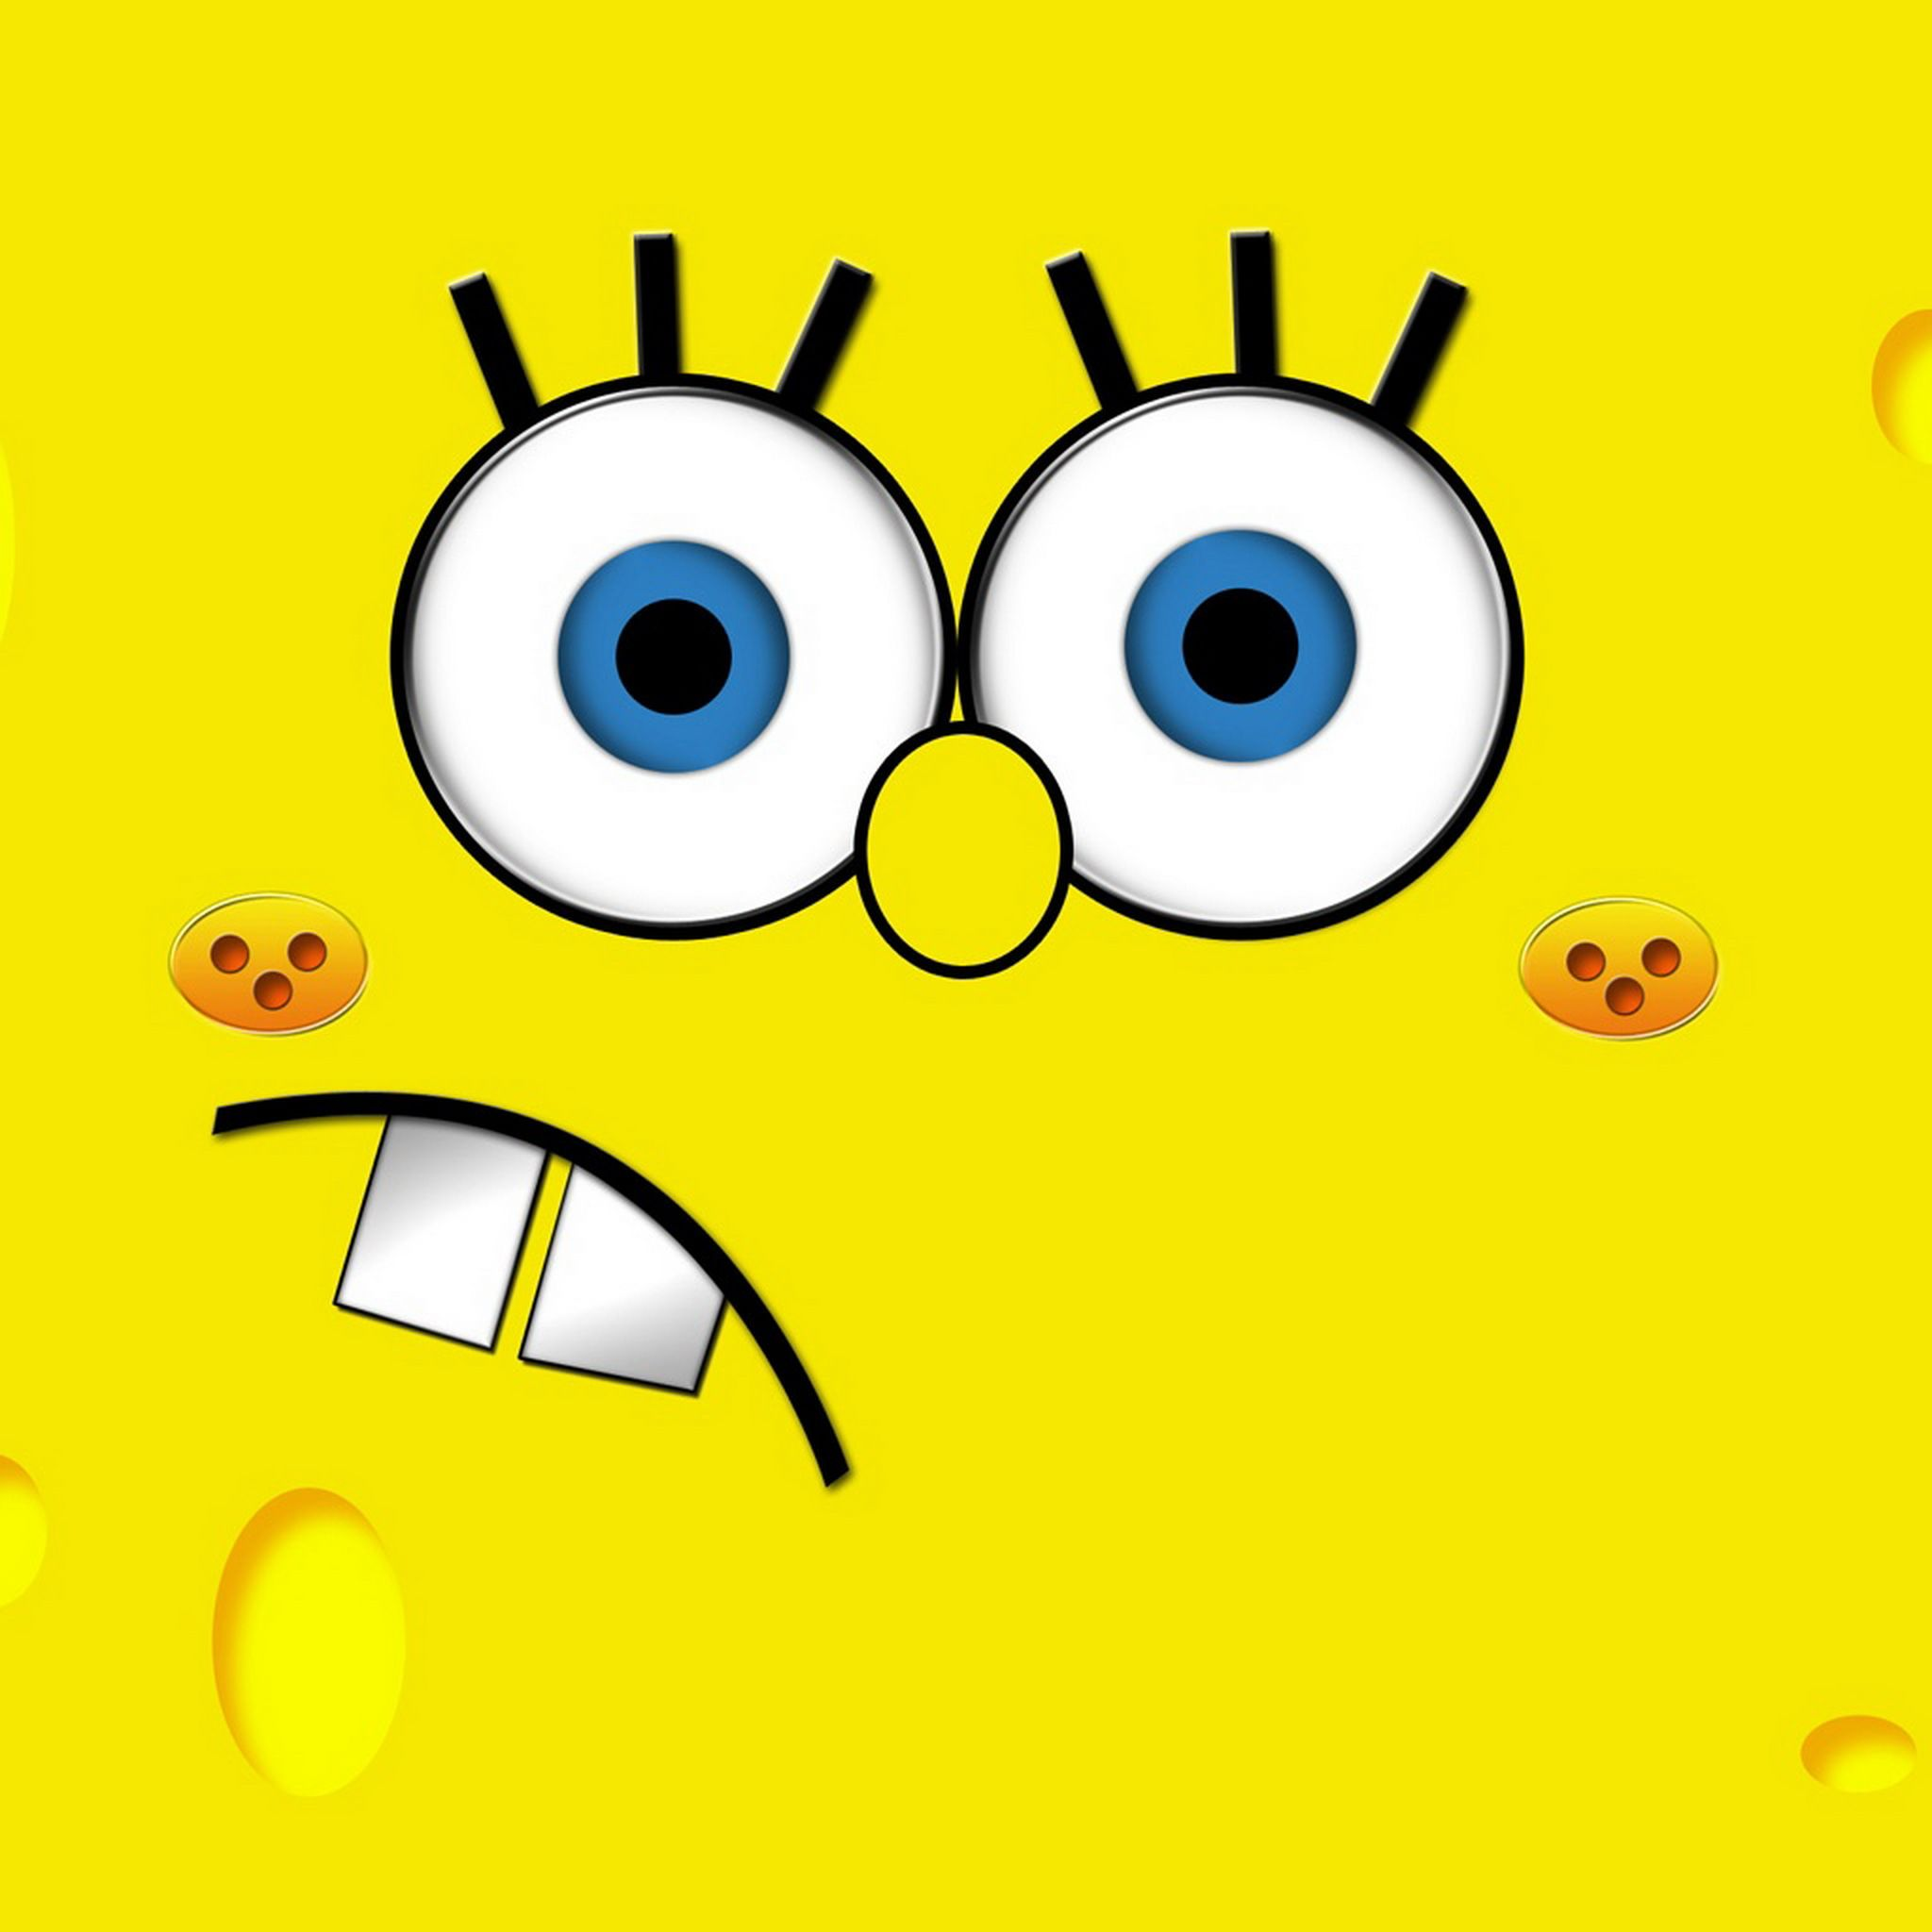 Spongebob Bigface Cartoon Ipad Wallpaper Mobile9 Spongebob Hello Kitty Wallpaper Spongebob Painting